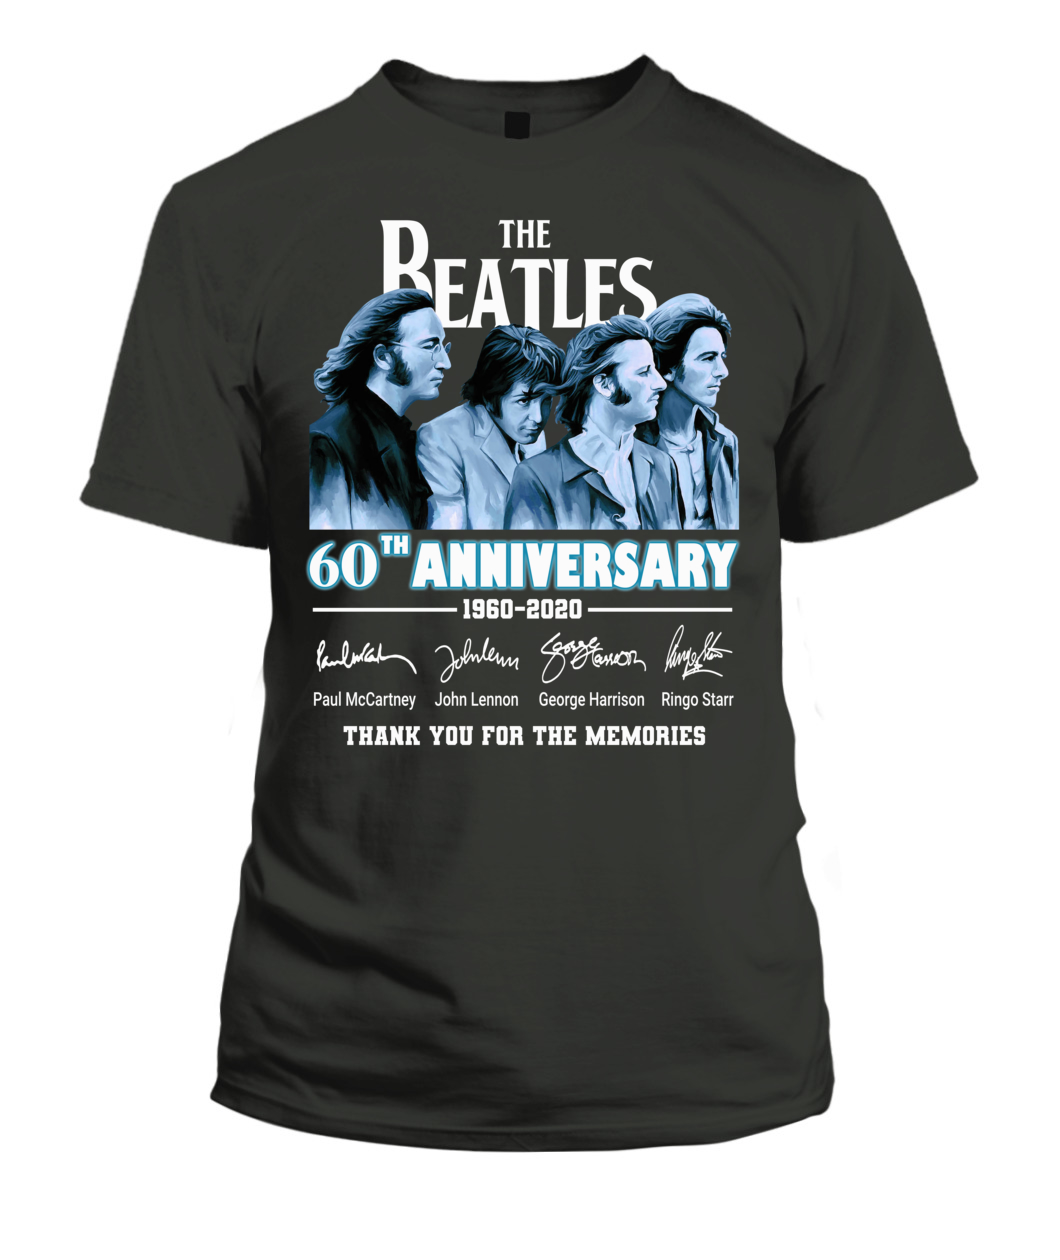 Limited Edition The Beatles